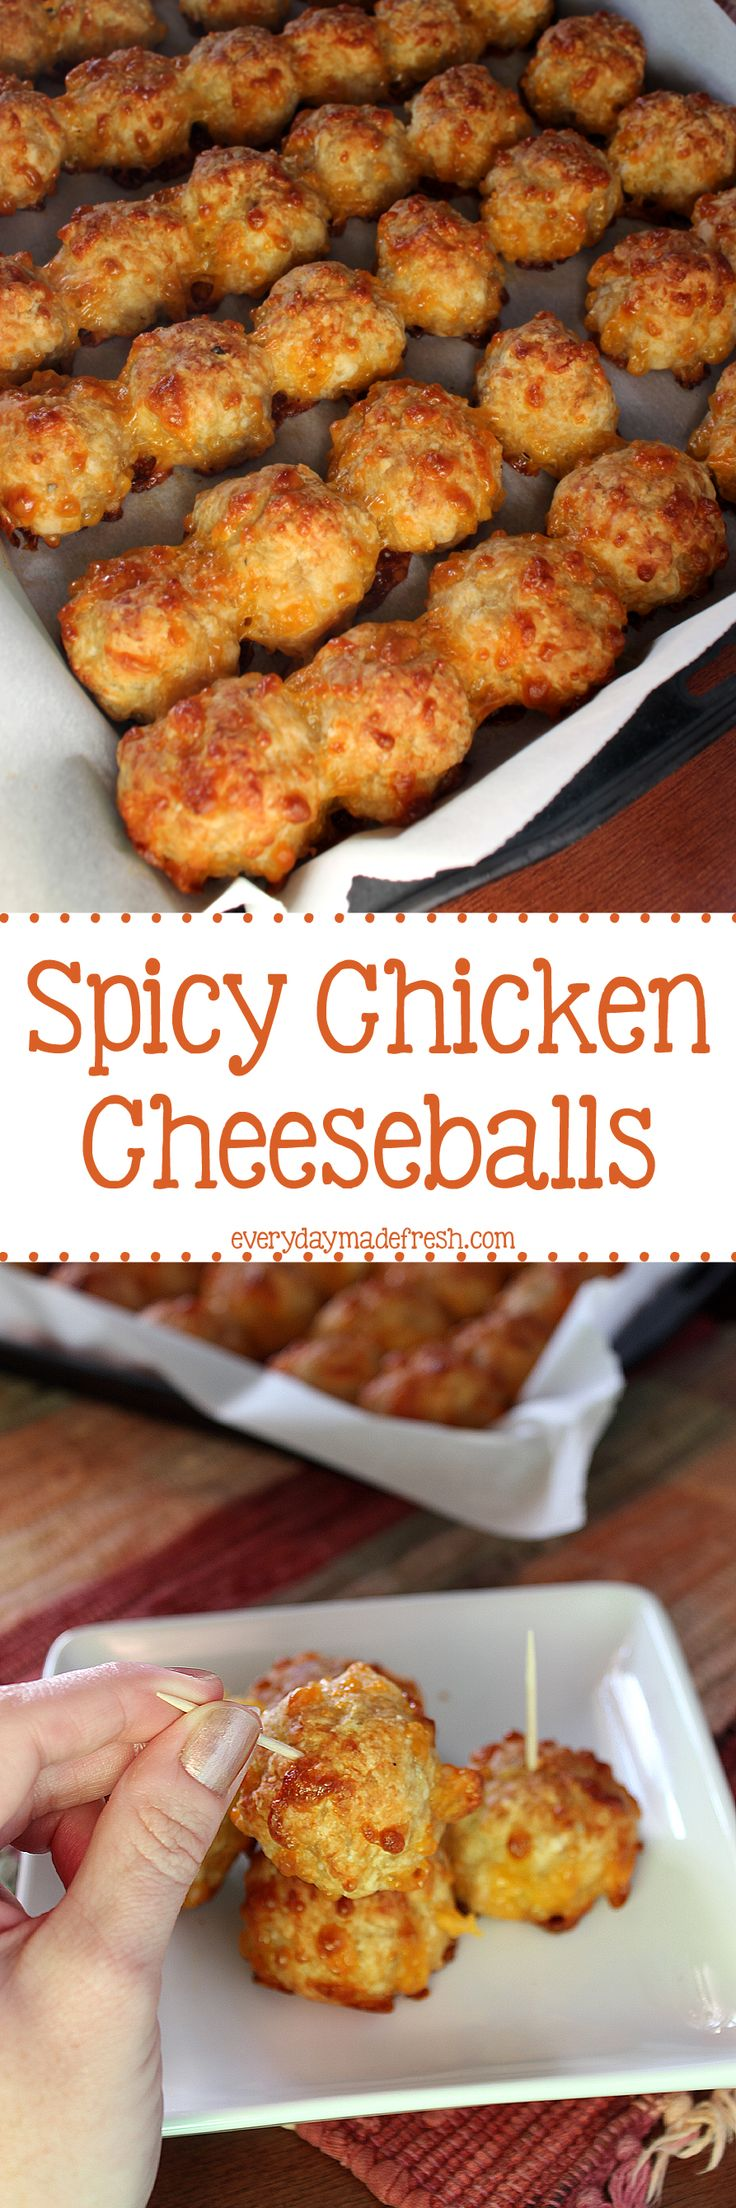 Move over sausage balls, we have a new favorite in town, and it's Spicy Chicken Cheeseballs!   EverydayMadeFresh.com http://www.everydaymadefresh.com/spicy-chicken-cheeseballs/